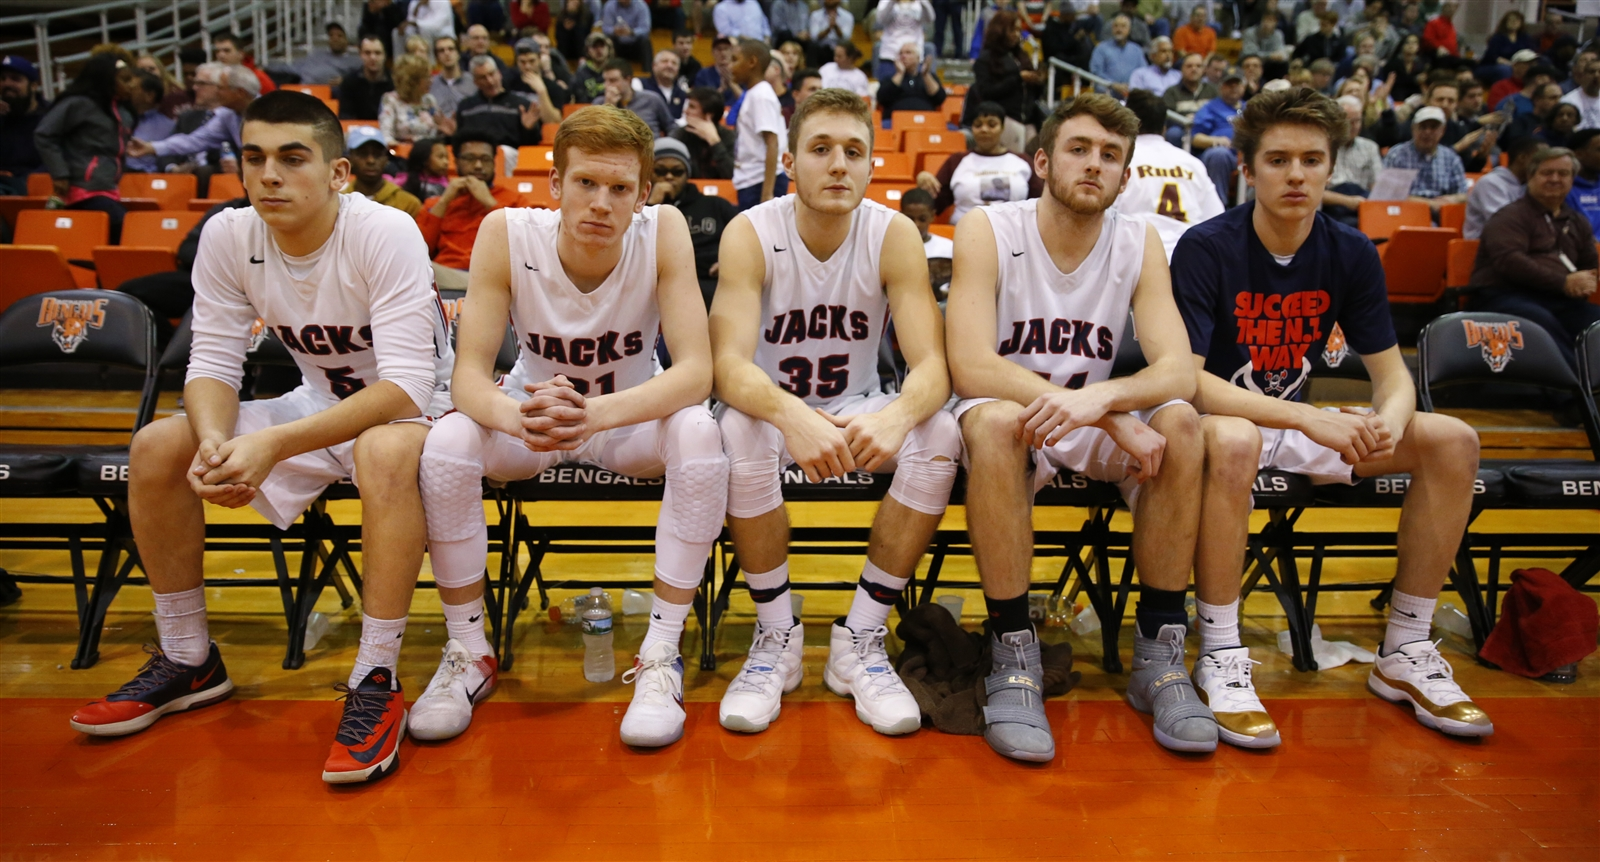 North Tonawanda starters wait to be introduced prior to playing Grand Island for the Class A1 Semi-final at Buffalo State on Tuesday, Feb. 28, 2017.